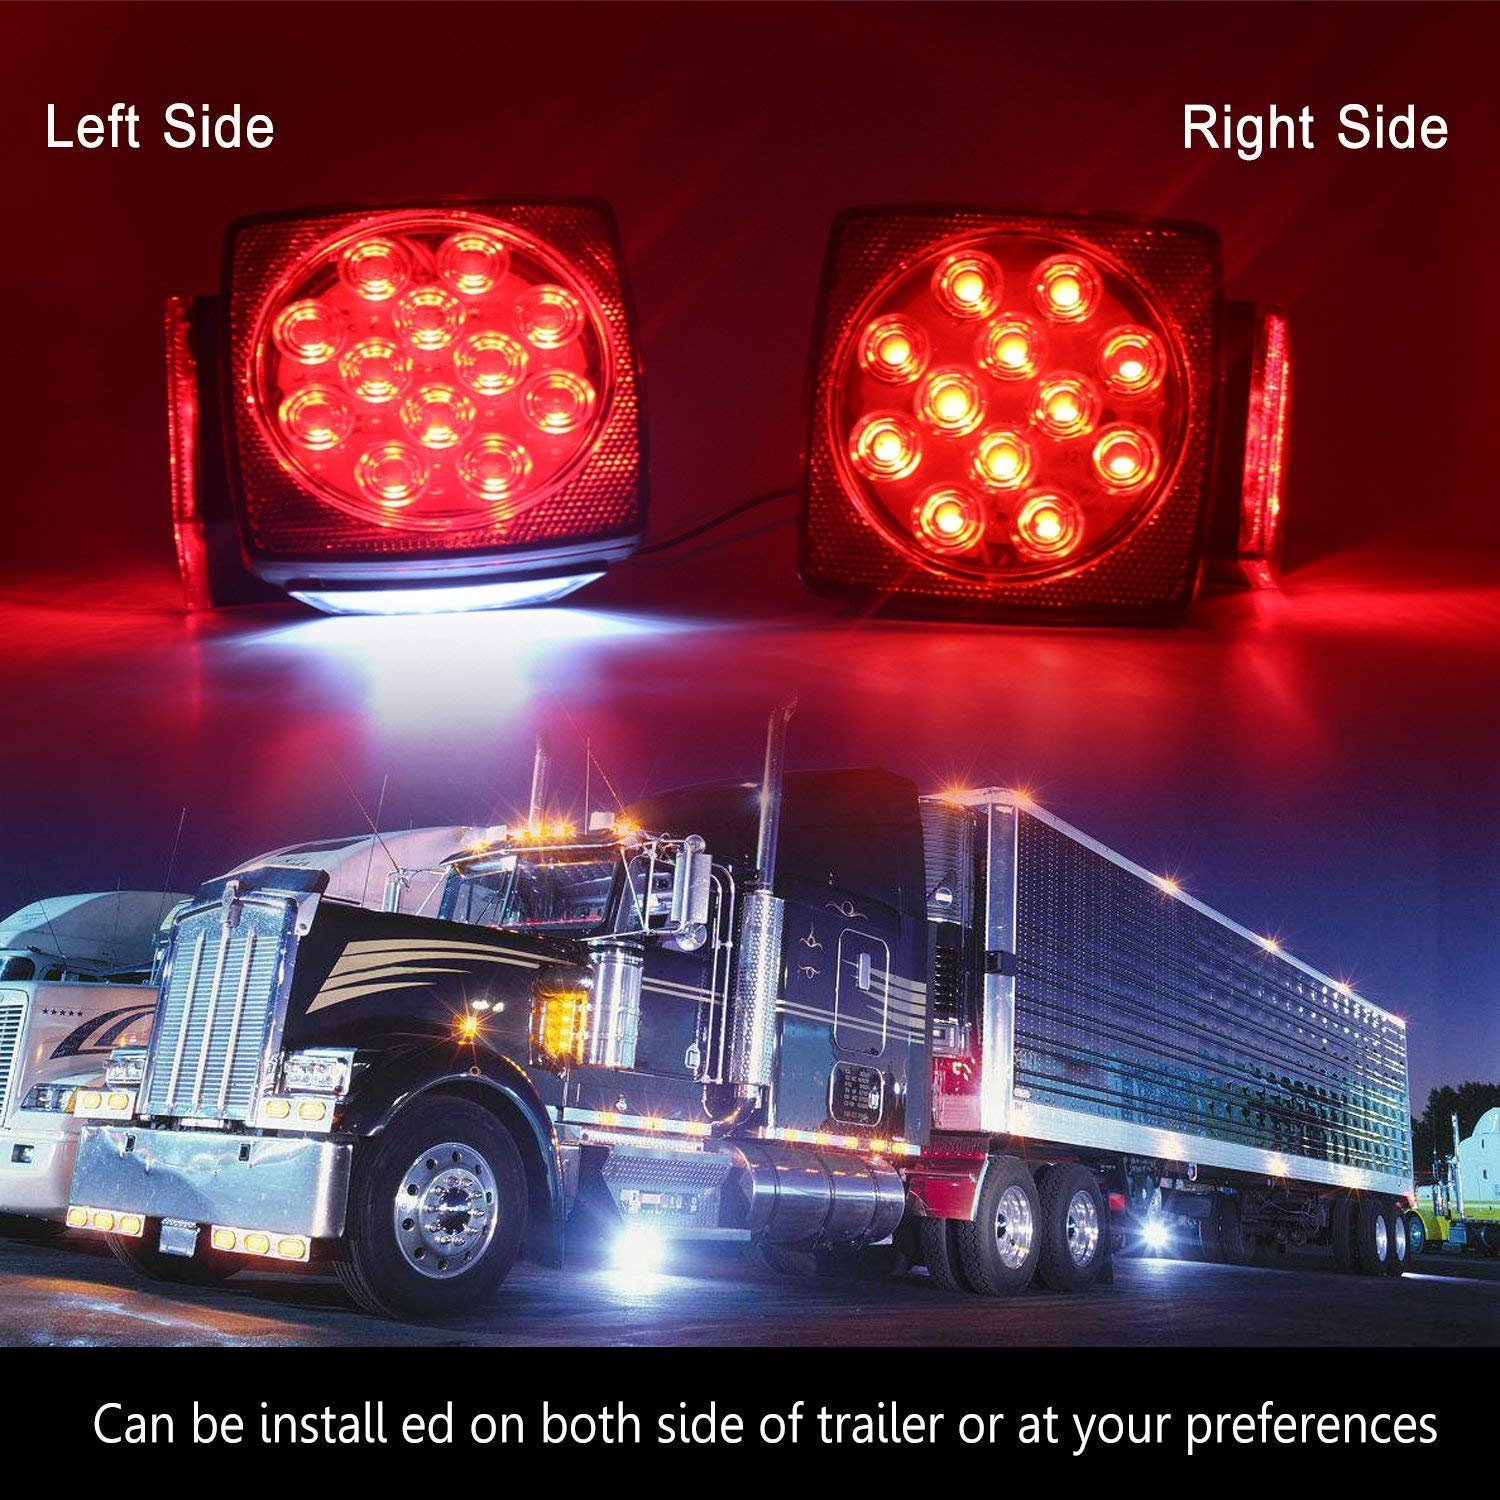 12v Led Trailer Light Kit Lontime Submersible Tail Lights Red Wiring A Boat For White Waterproof